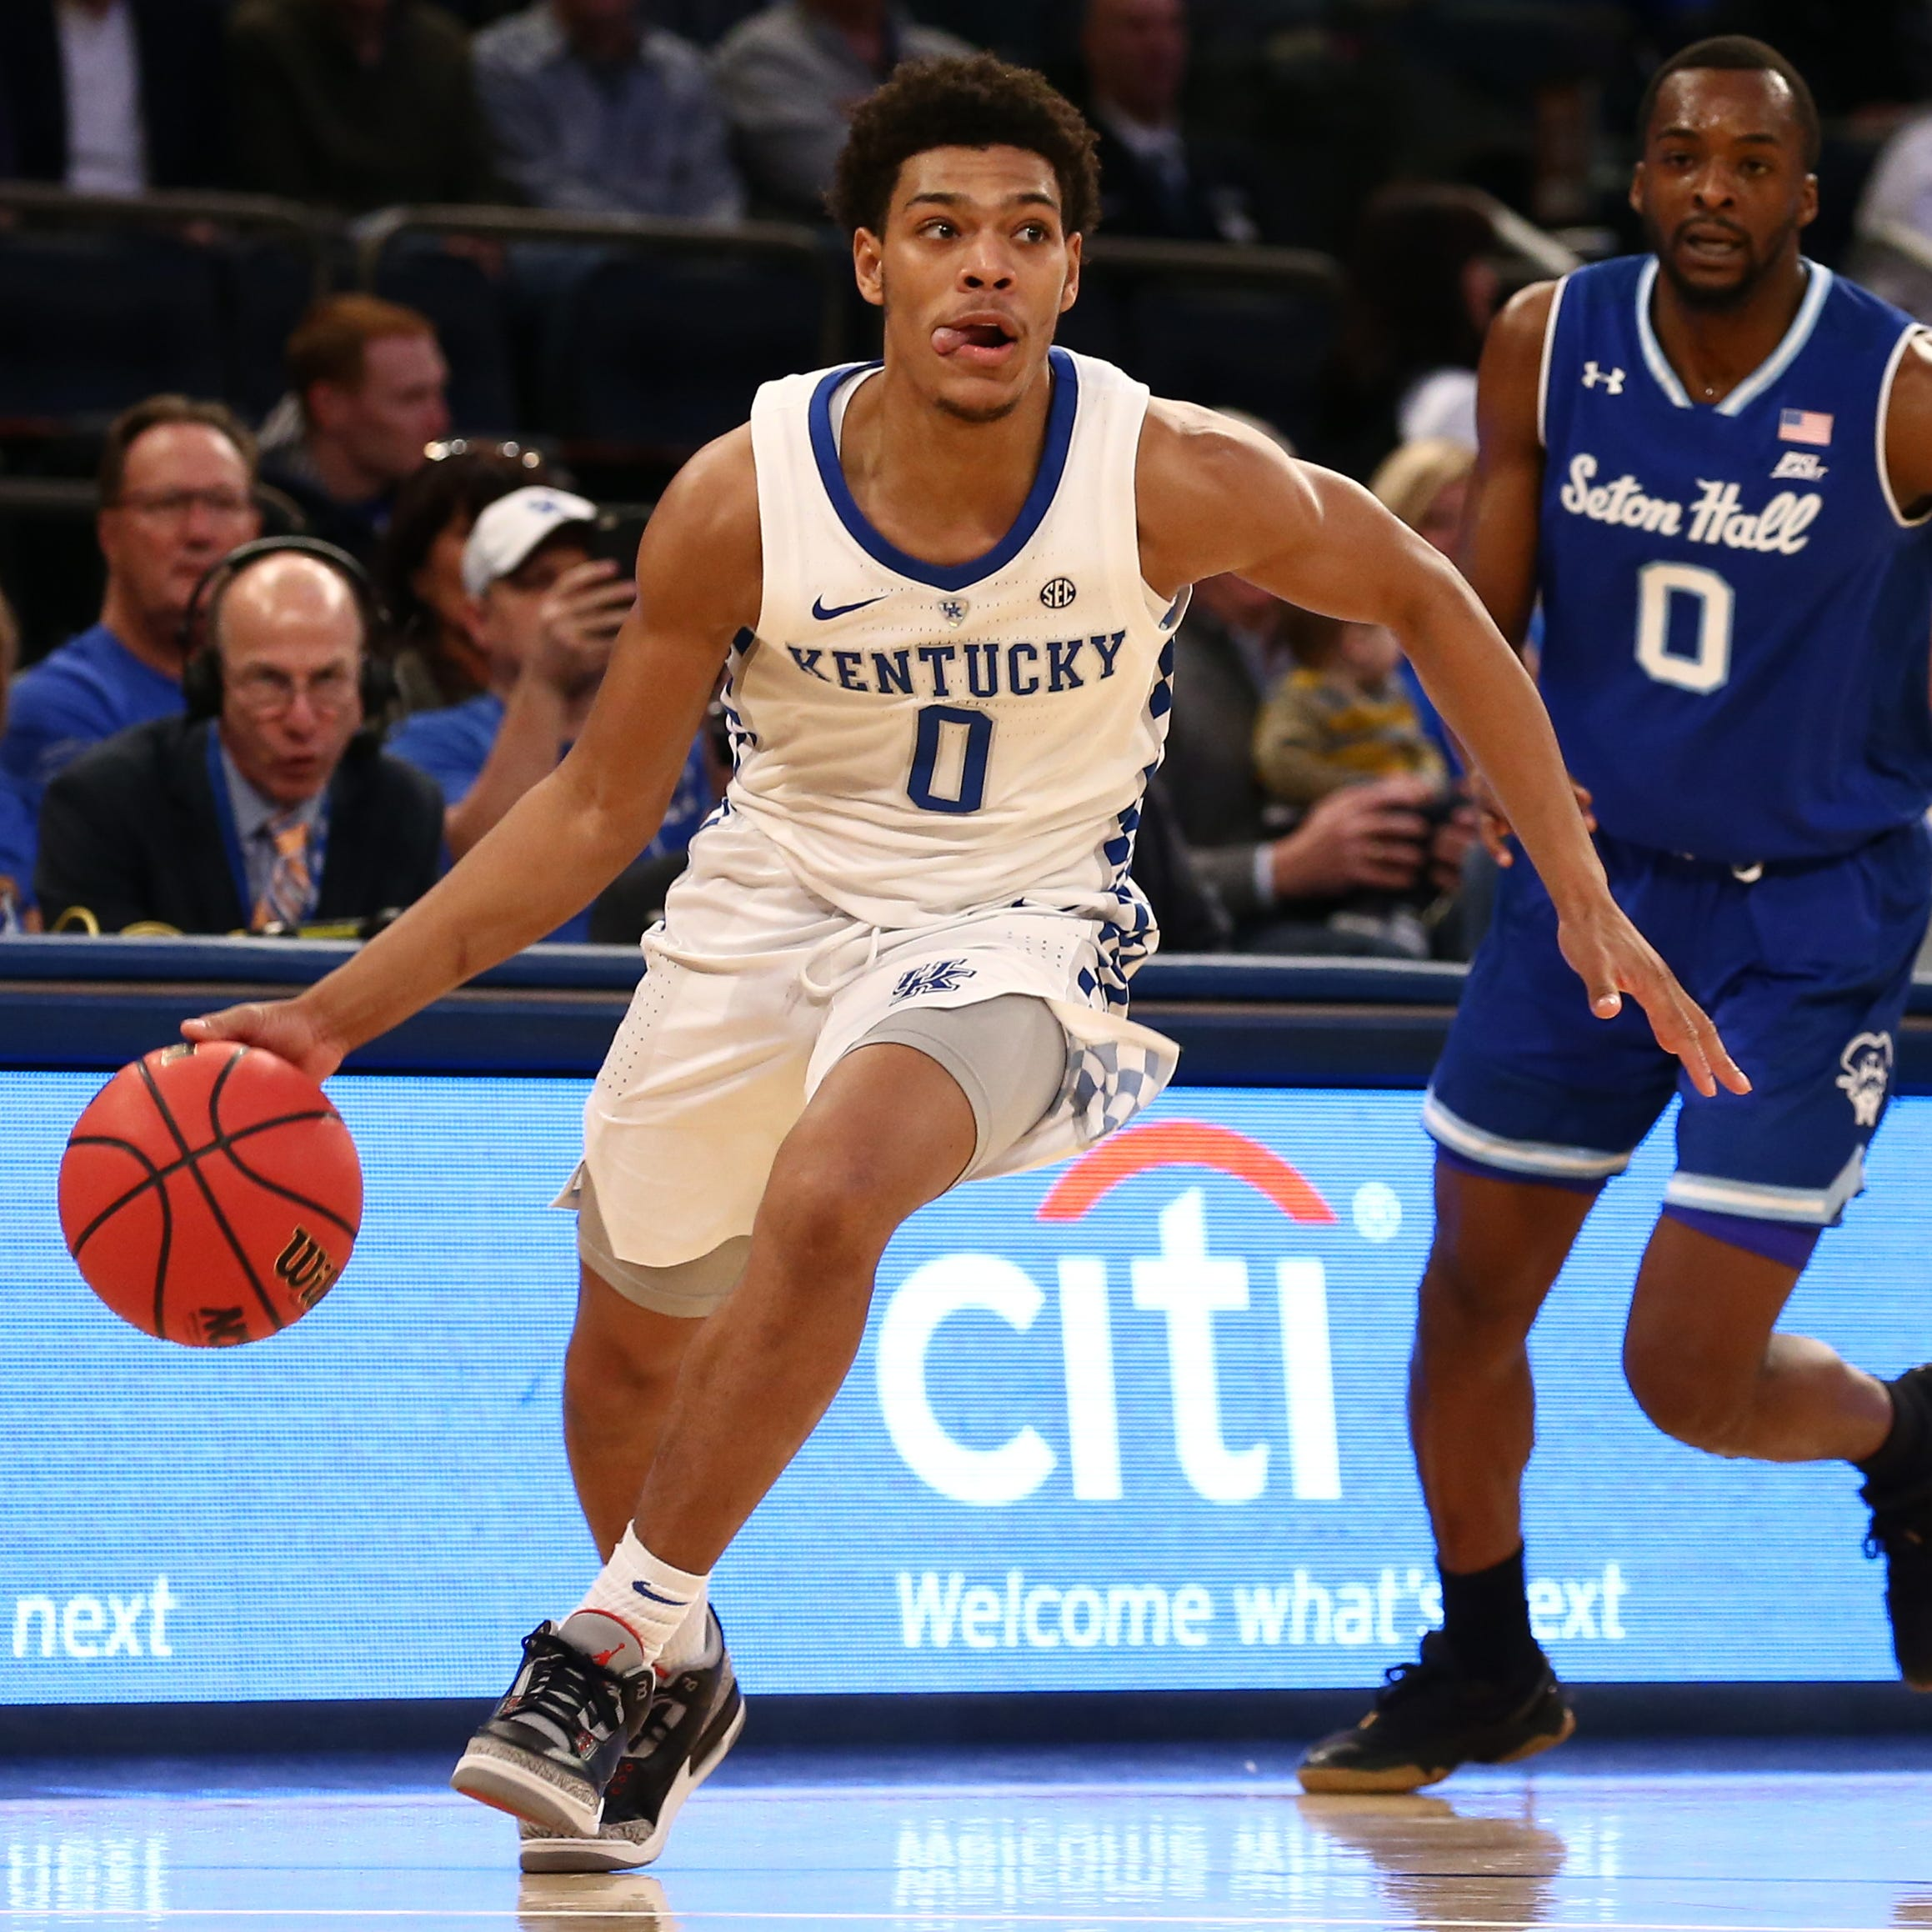 Quade Green makes 'difficult decision' to transfer from Kentucky